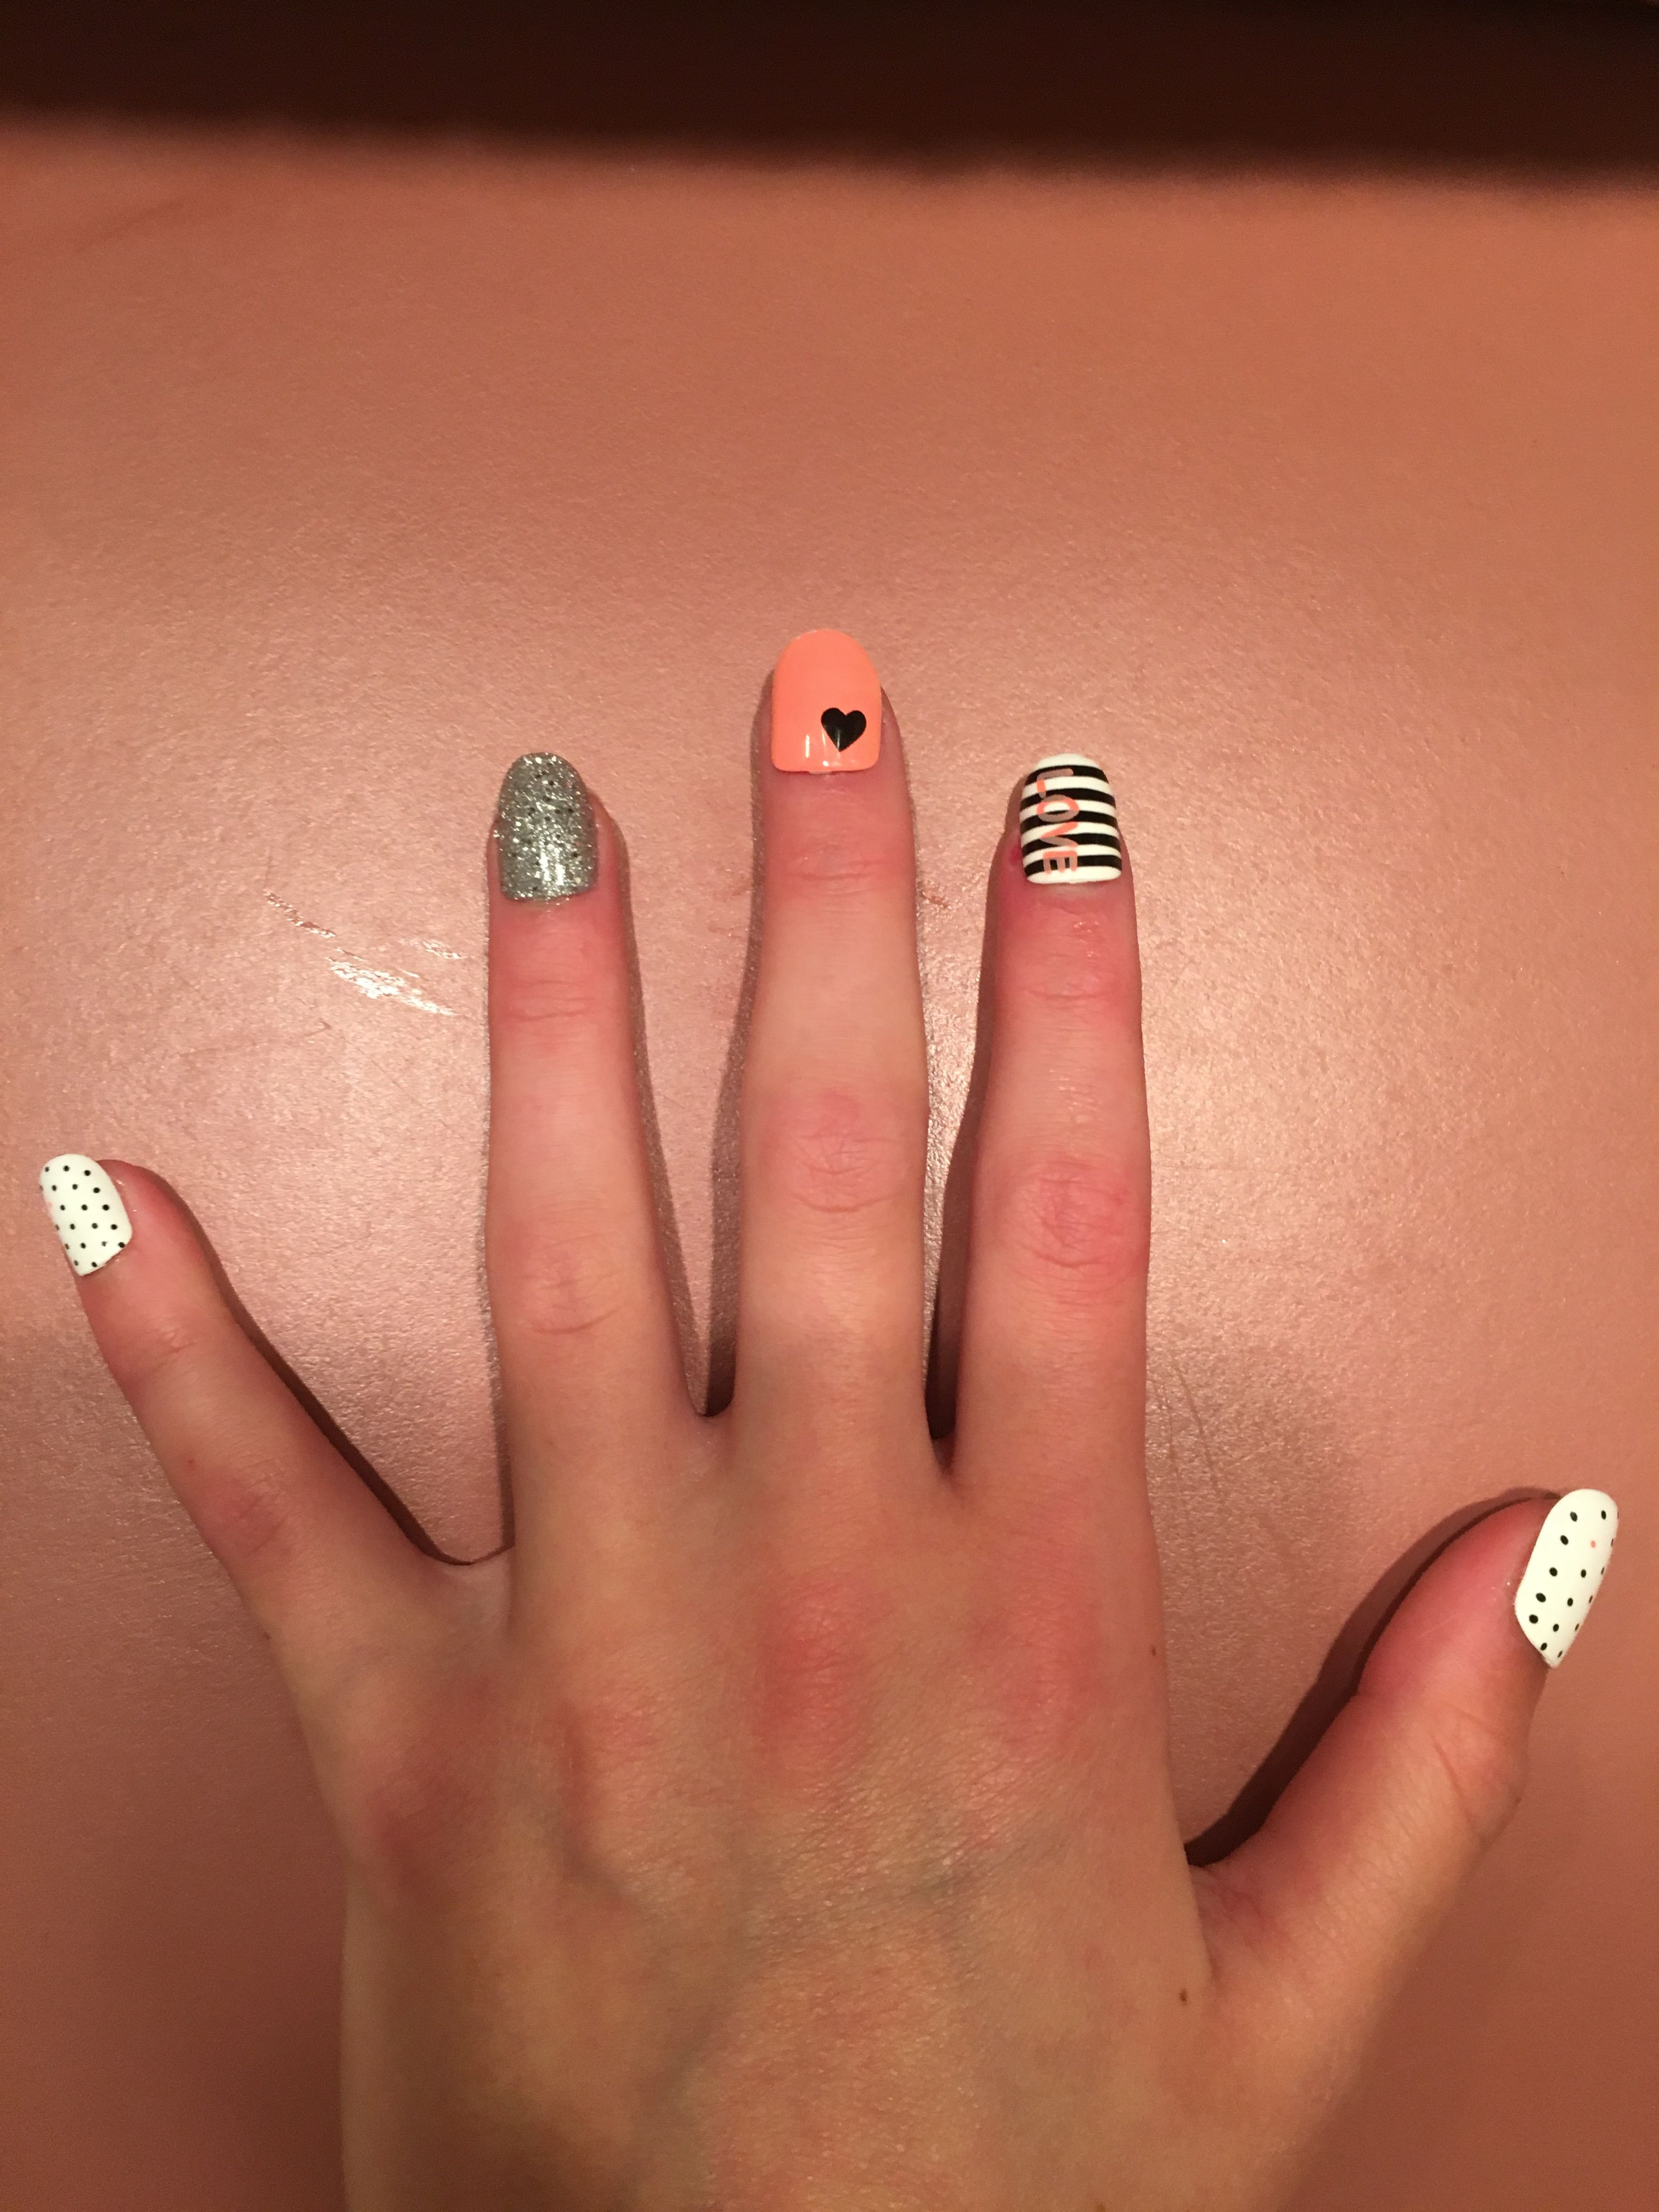 49 Cool Halloween Nail Art Ideas You Should Try Halloween Acrylic Nails Nails Holloween Nails